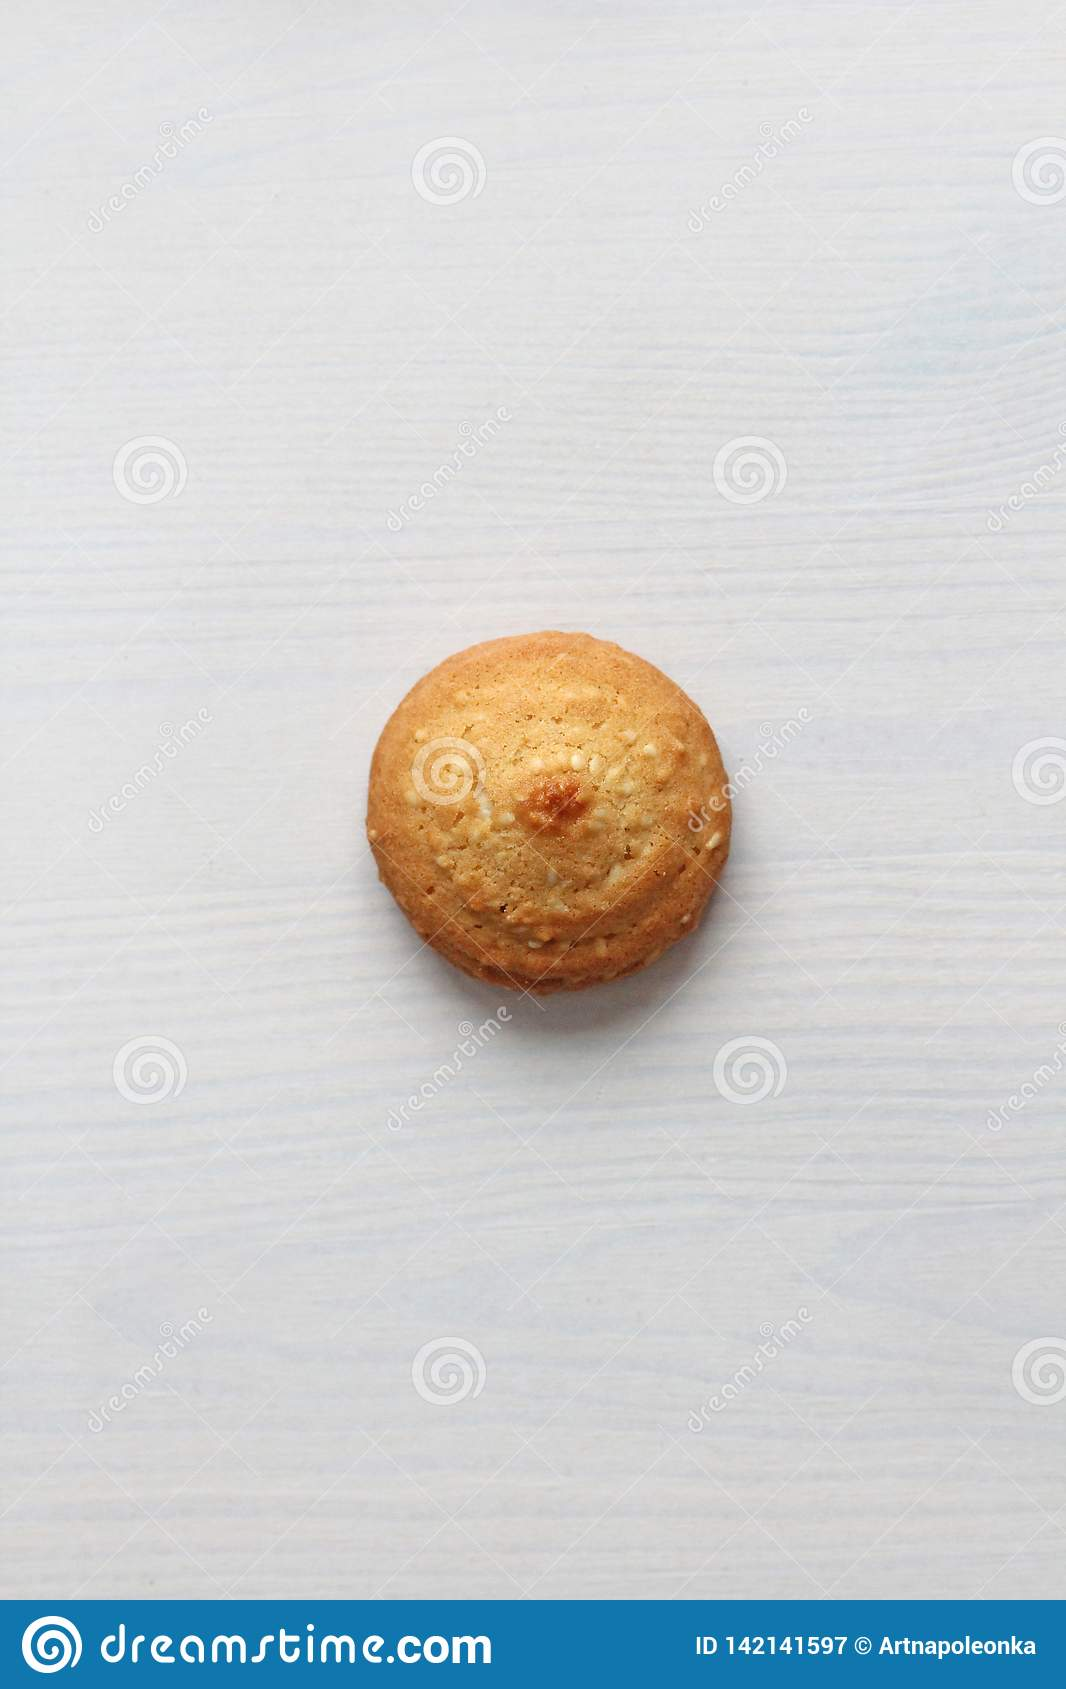 Cookies on a white background, similar to female nipples. nipples in the form of cookies. Humor, double meaning